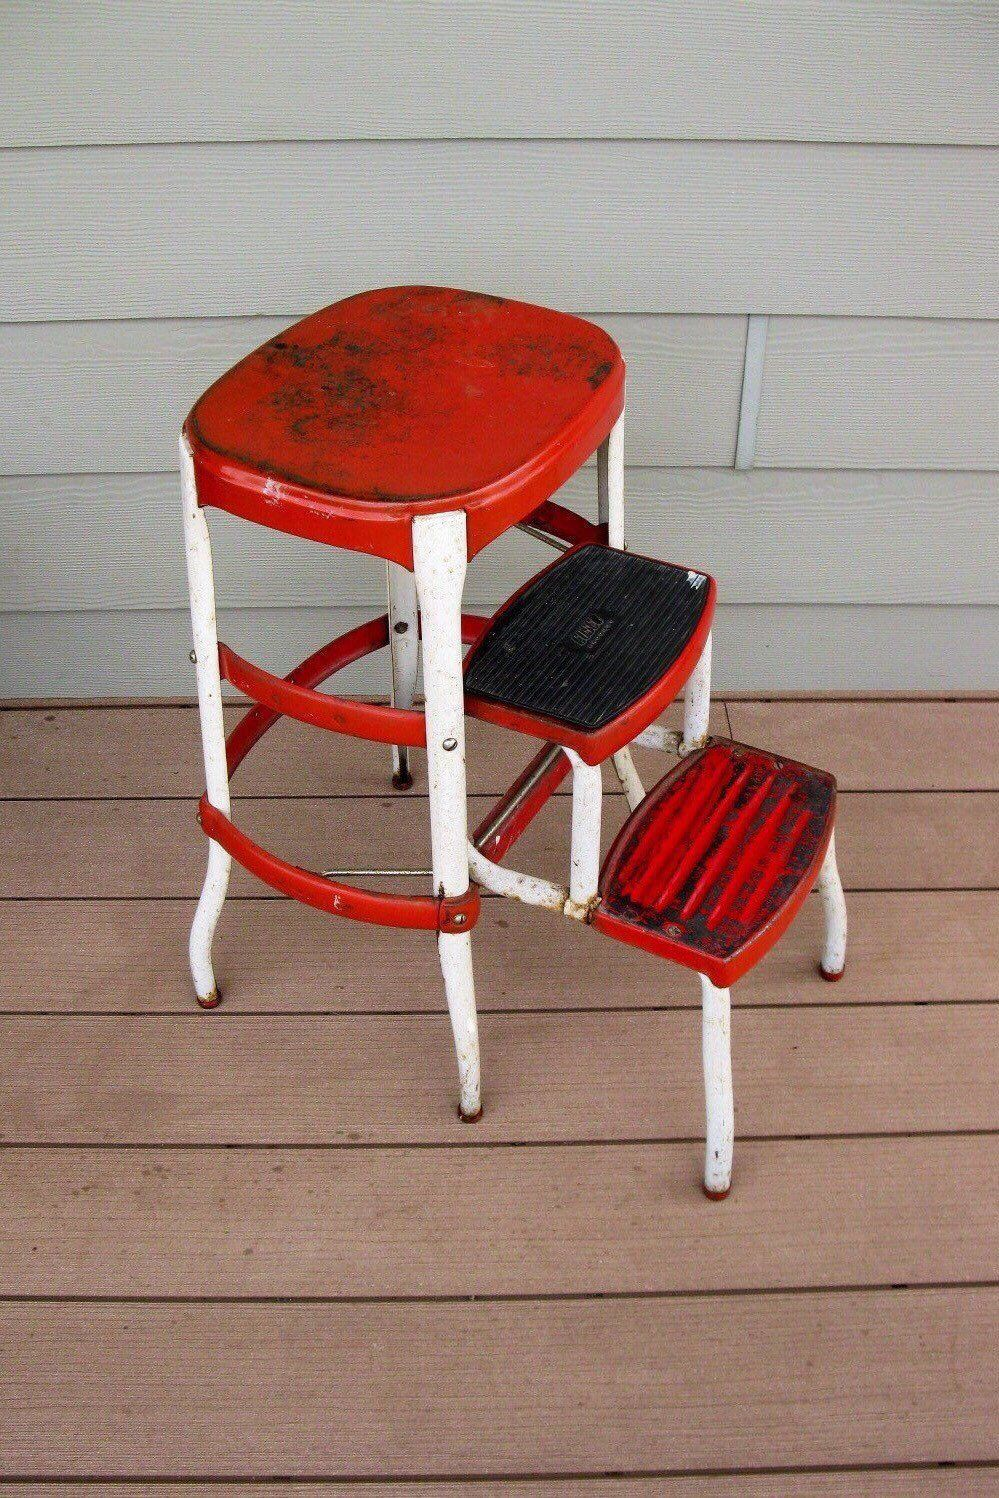 Marvelous Shabby Metal Cosco Stool Chair Red Childs Stool Step Gmtry Best Dining Table And Chair Ideas Images Gmtryco